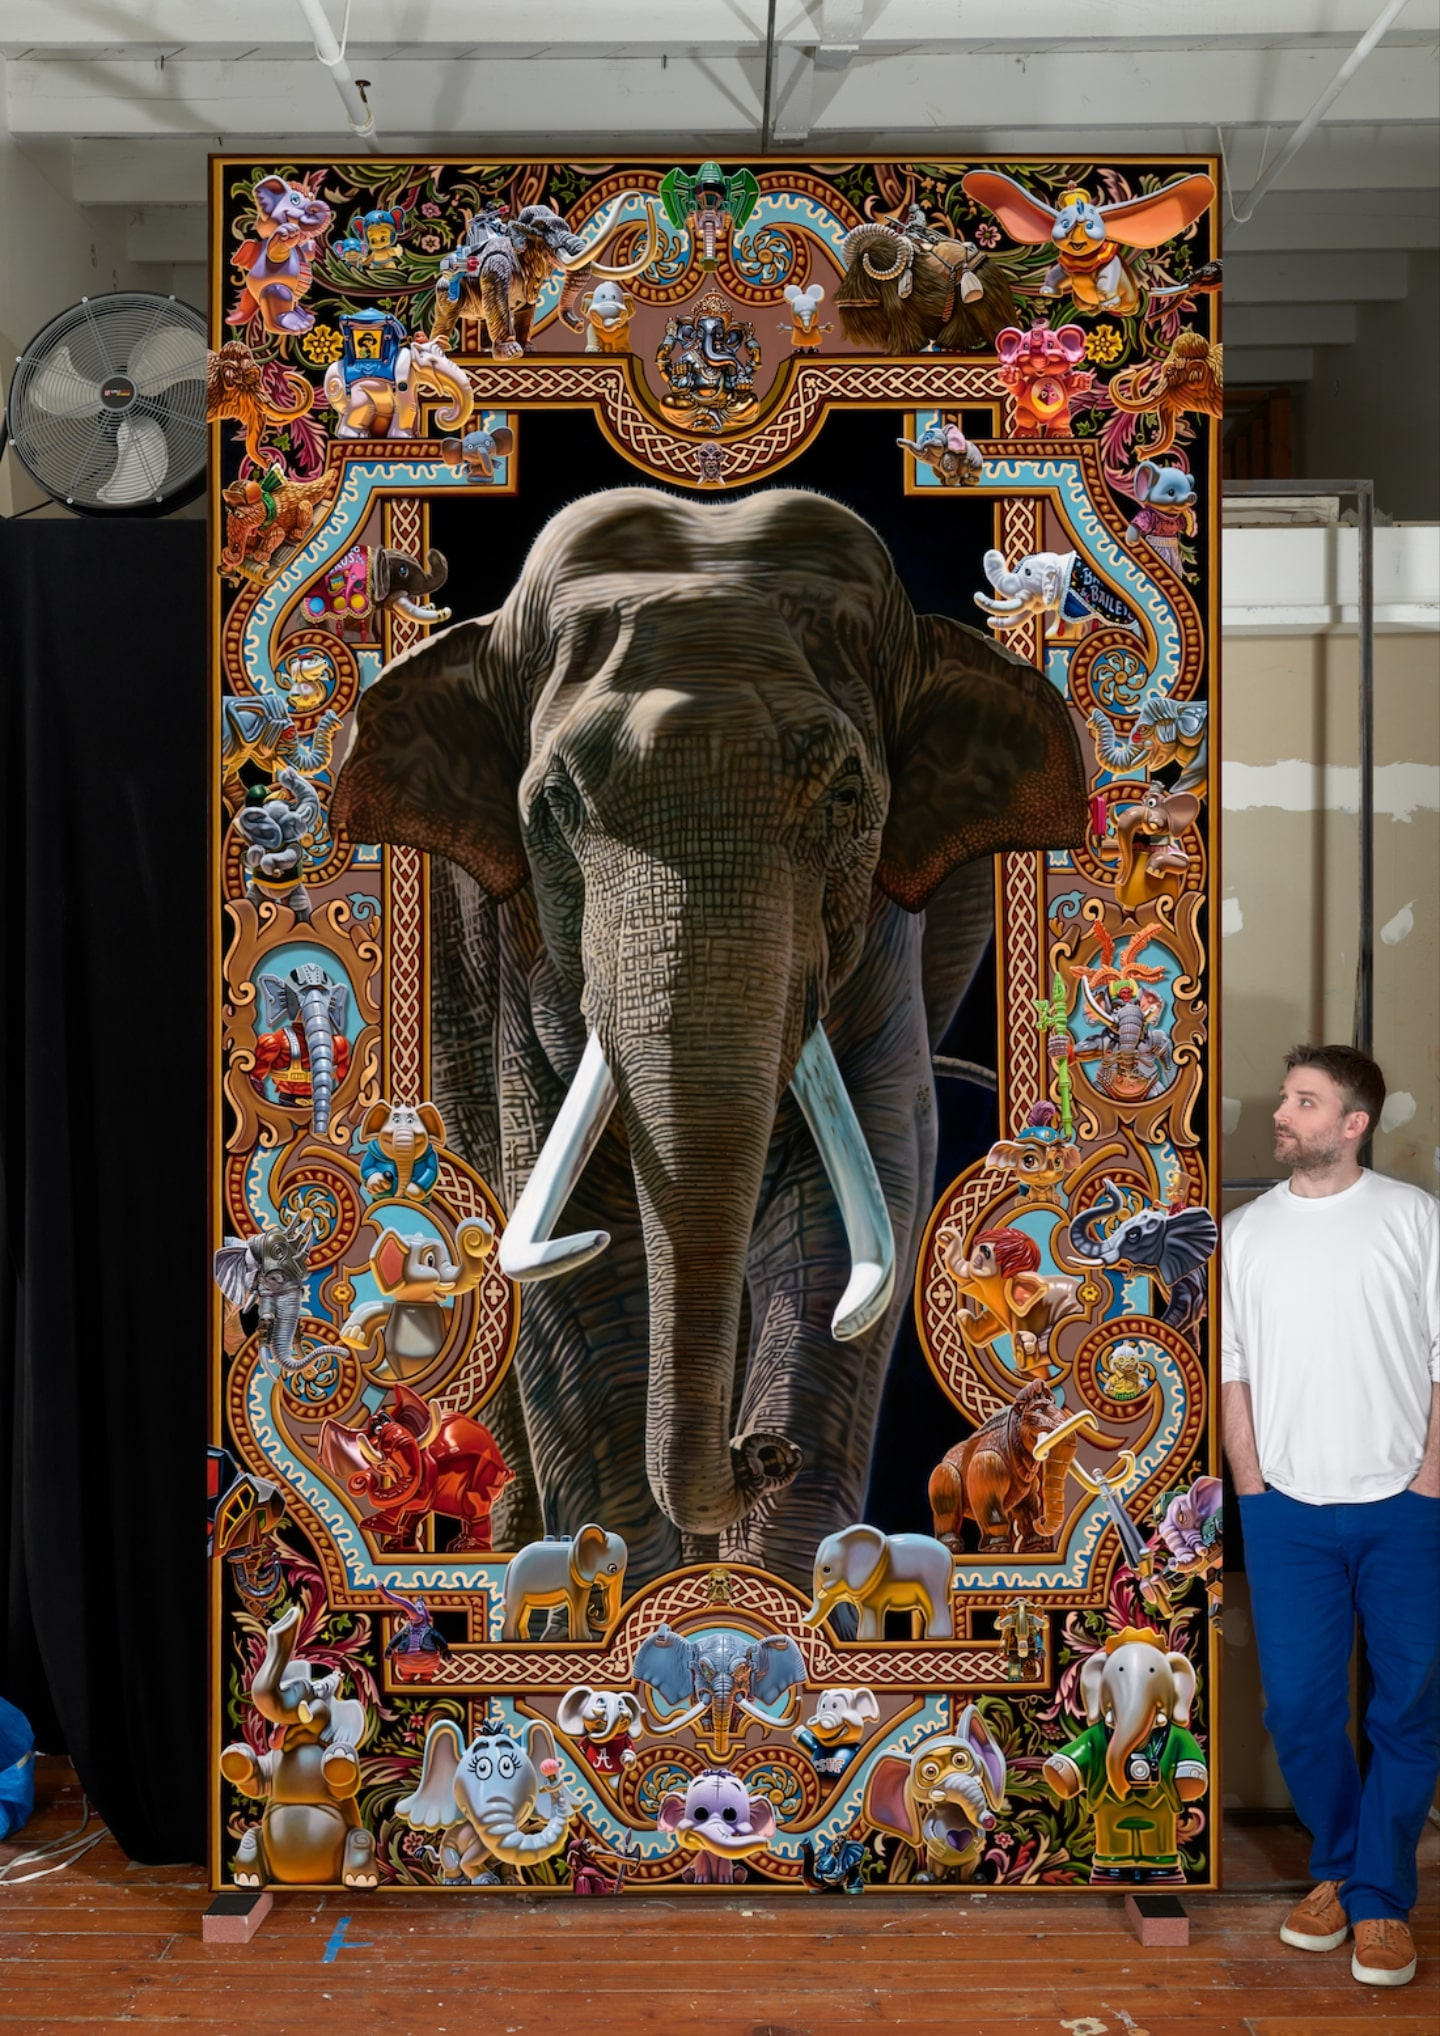 "'Elephantidae' (studio image, oil on canvas, 144"" x 84"", 2019) by Robert Xavier Burden. Photo by John Janca"